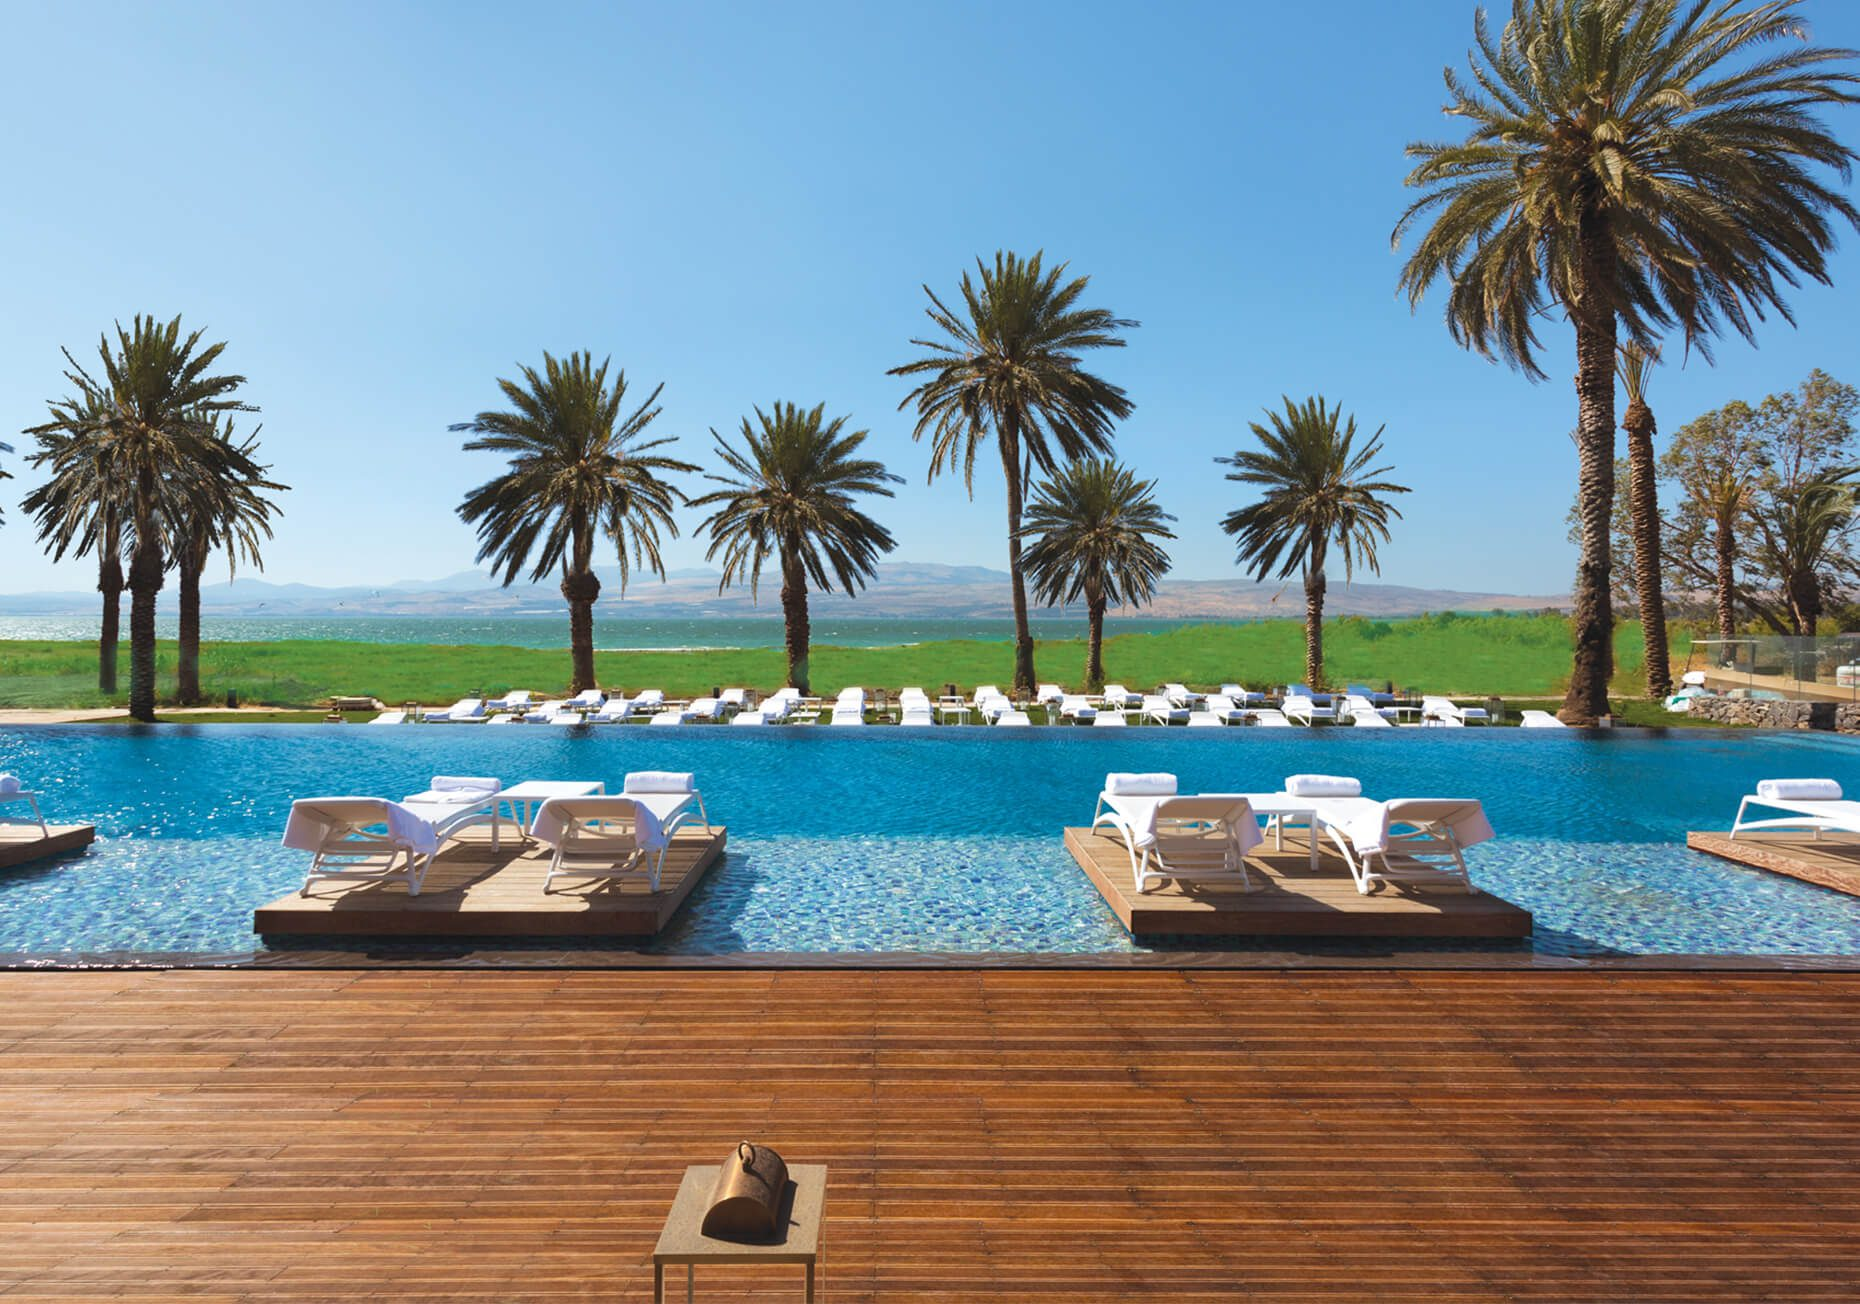 Setai Sea of Galilee Pool on Israel & Jordan holiday